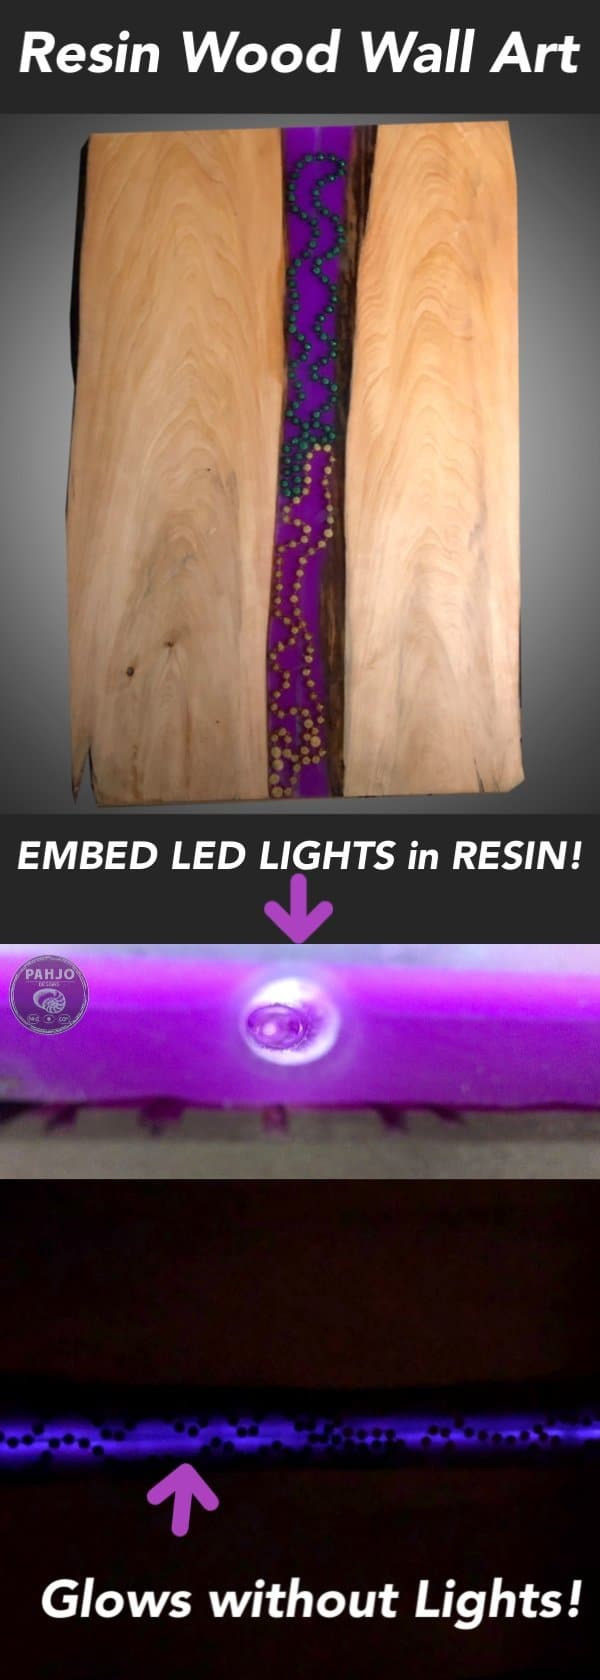 Learn the best technique to embed LED strip lights in Epoxy Resin and easily replace them.  Due to popular demand, I decided to provide more detail on a new technique I used in a recent epoxy resin LED wall art project.  This epoxy resin technique shows how to embed led strip lights in resin and replace them. Furthermore, this technique makes it easy to upgrade LED strip lights to different colors.